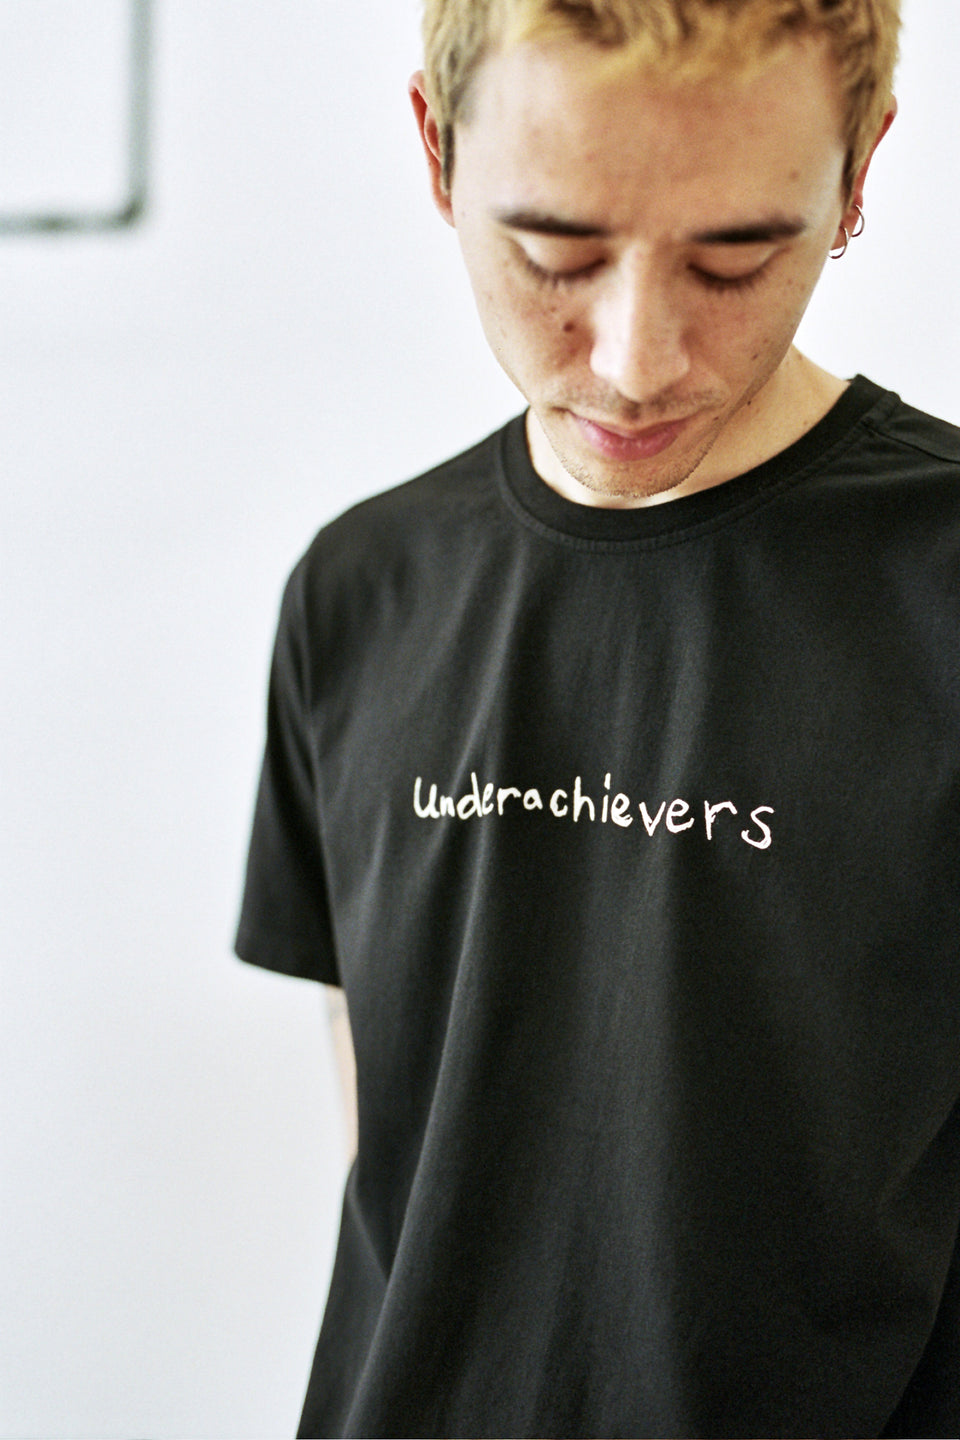 Pop Trading Company AW20 FW20 Underachievers T-Shirt Calculus Victoria BC Canada